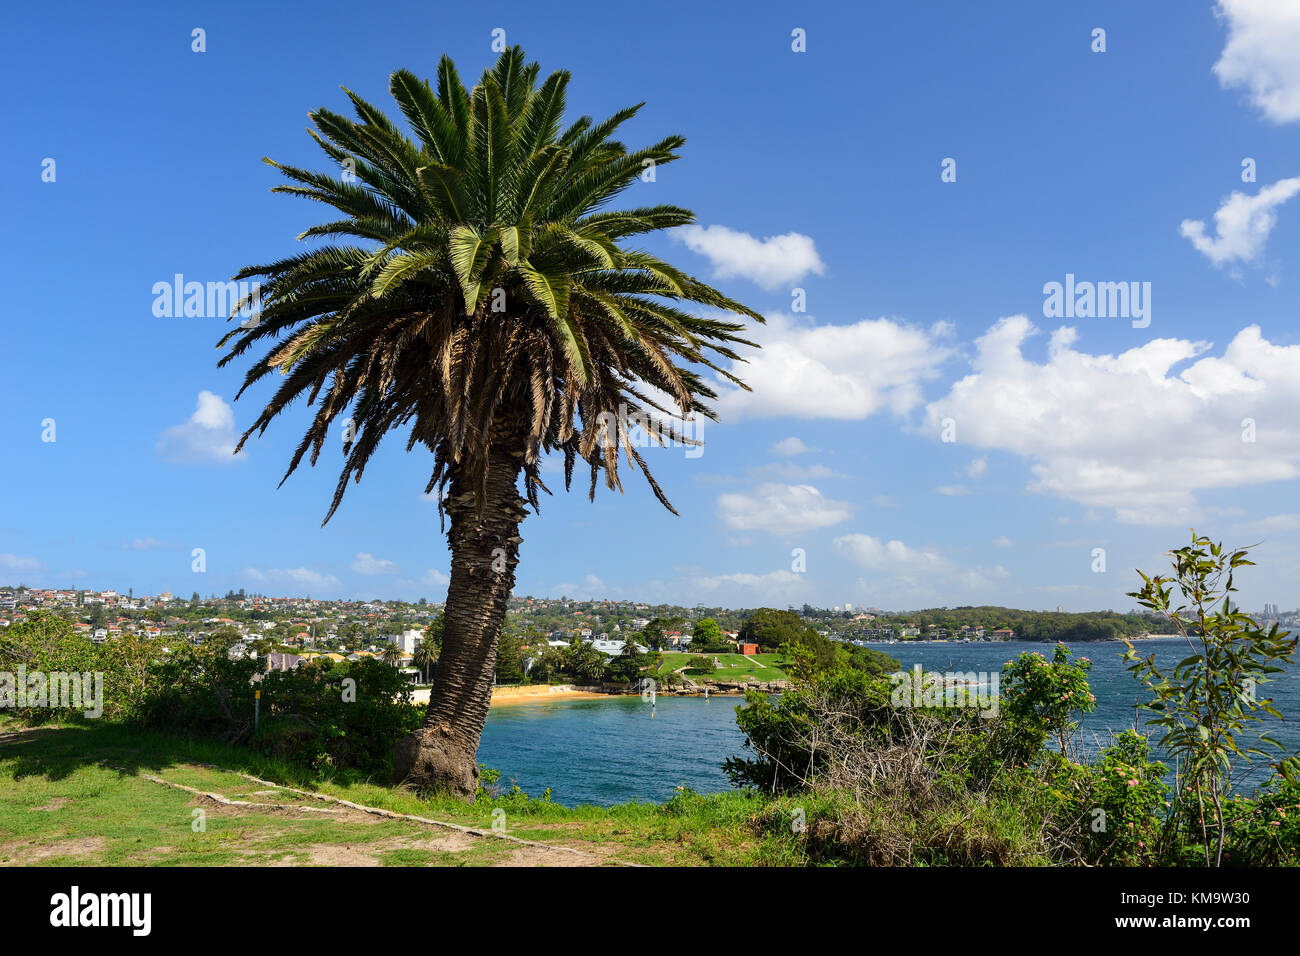 Camp Cove in Watsons Bay, an eastern suburb of Sydney, New South Wales, Australia - Stock Image